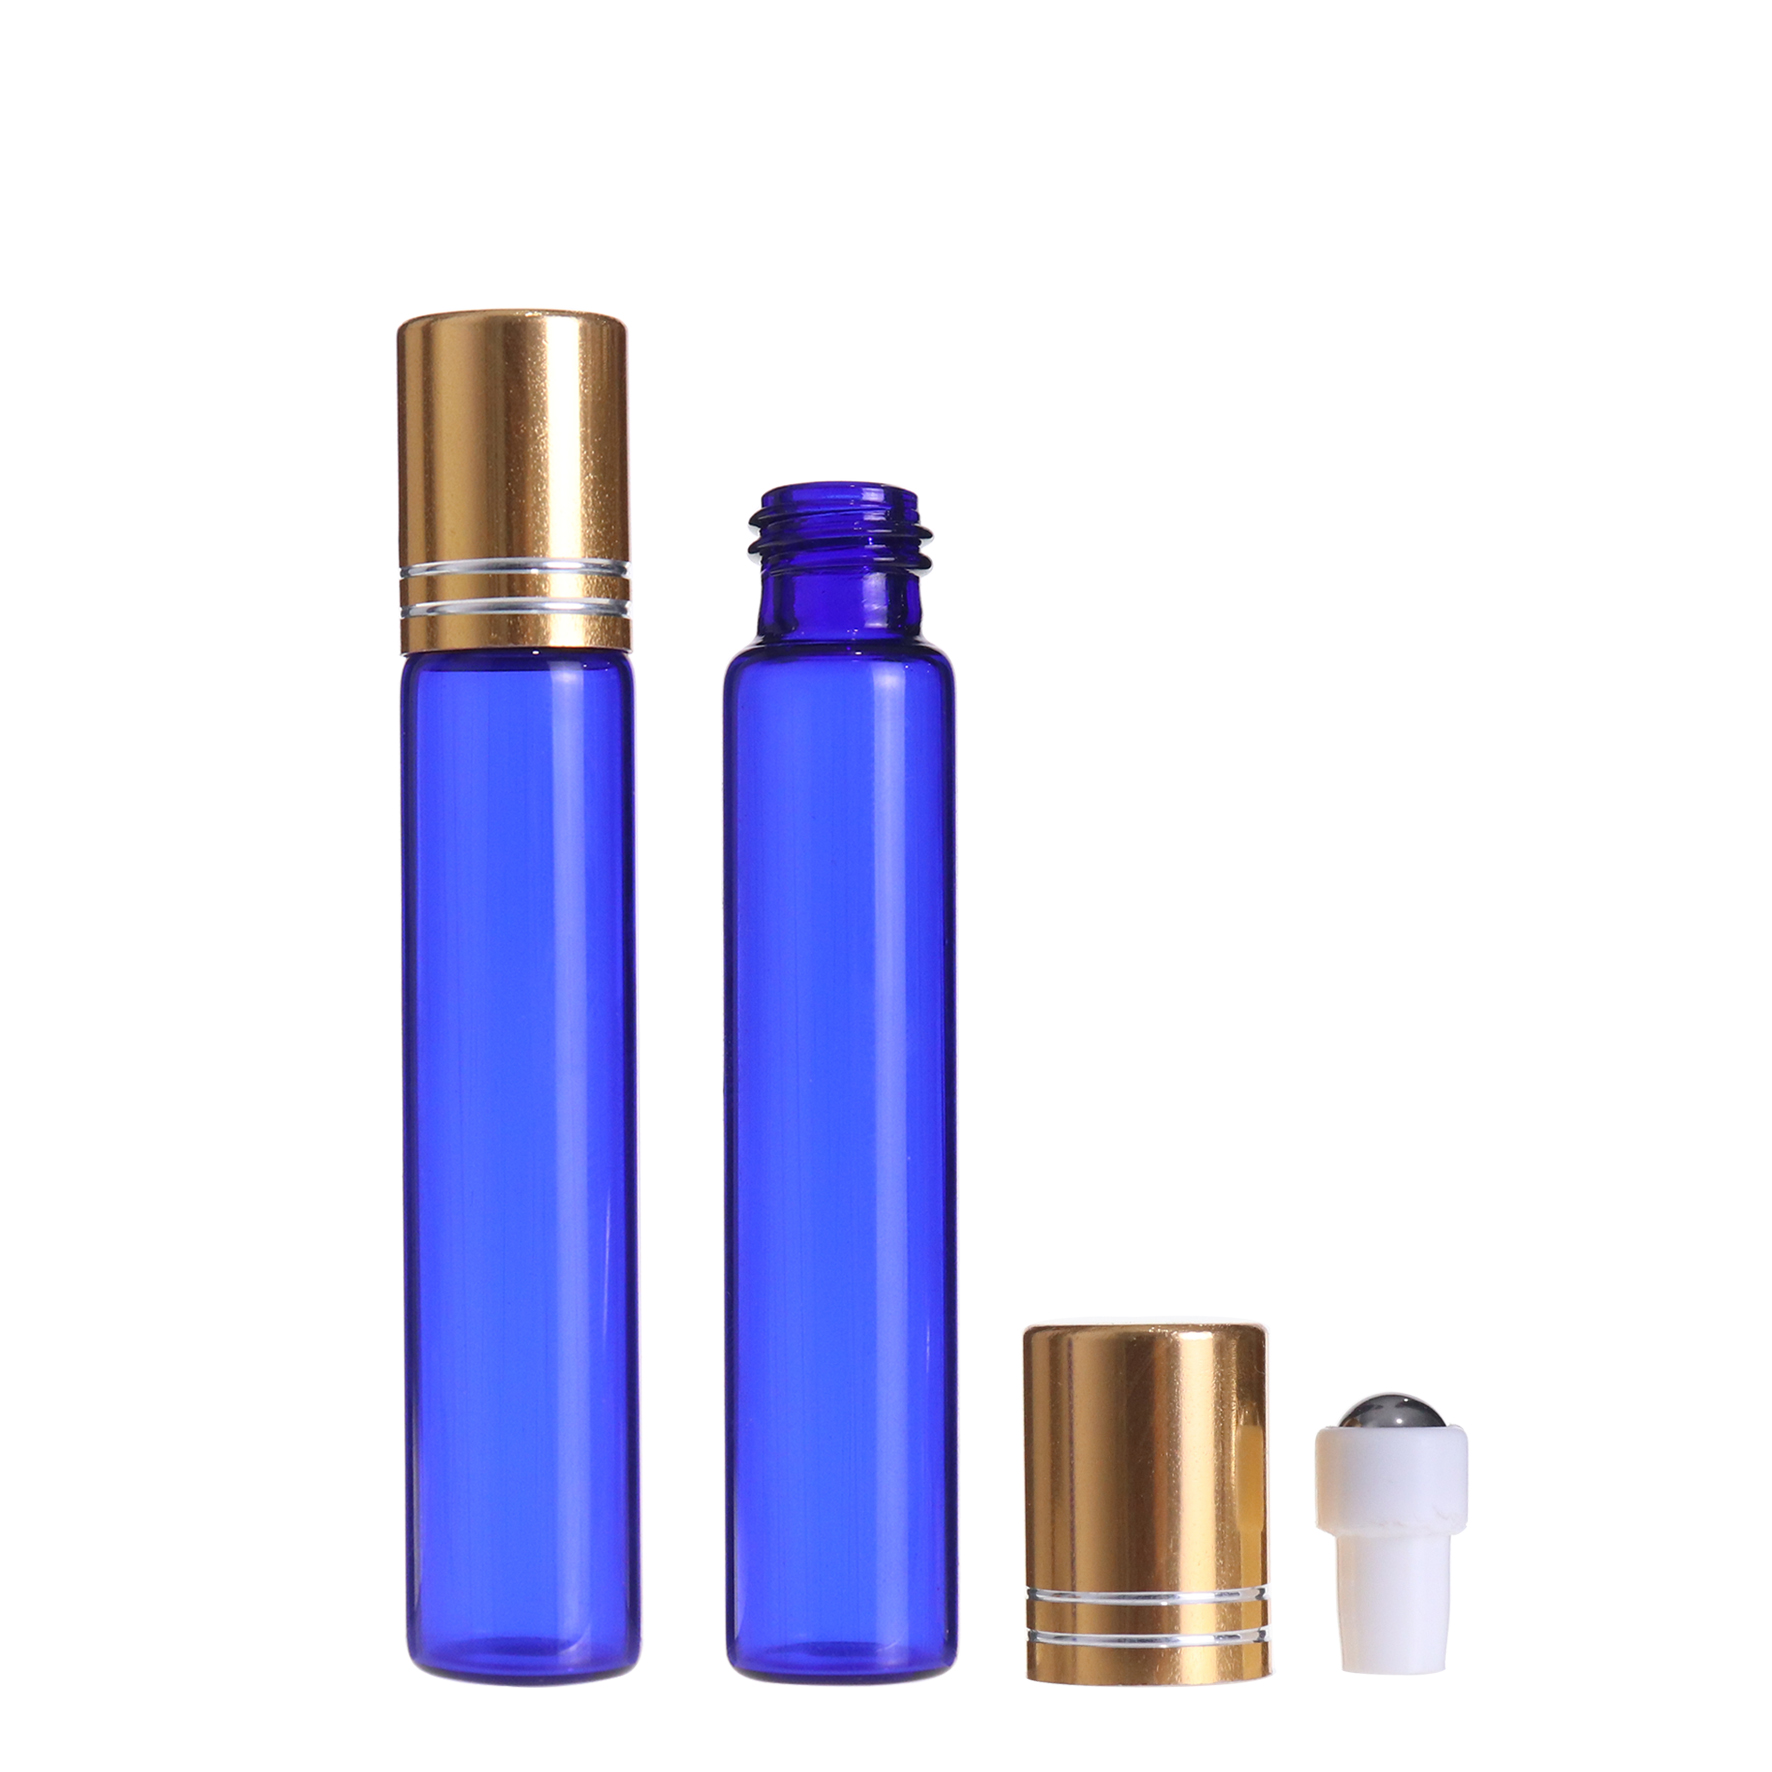 eye rolls on bottle 10ml blue glass deodorant essential oils vials with roller ball